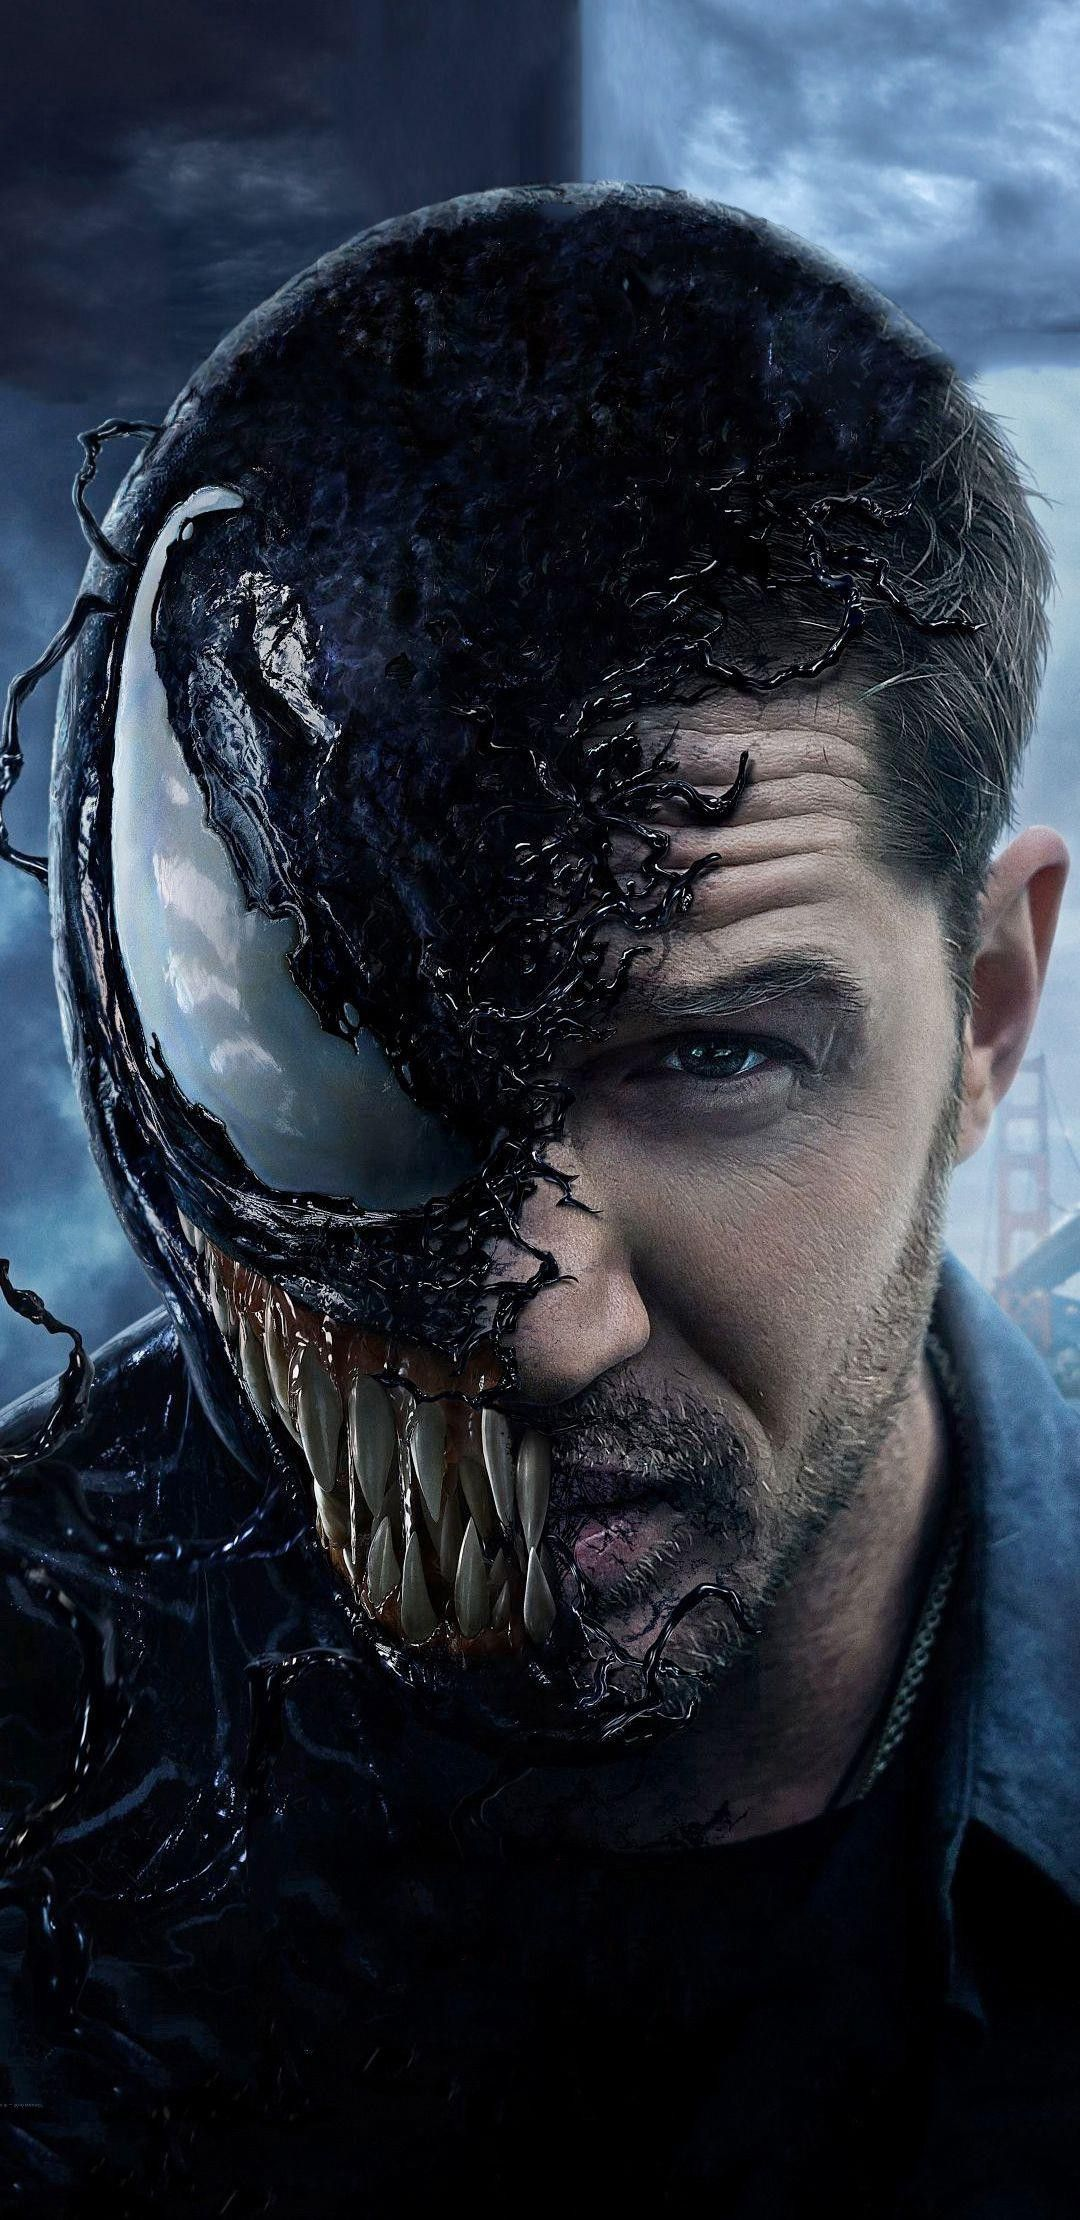 Hey Guys Check Out This Awesome Pick Of Venom Movie Coming Soon